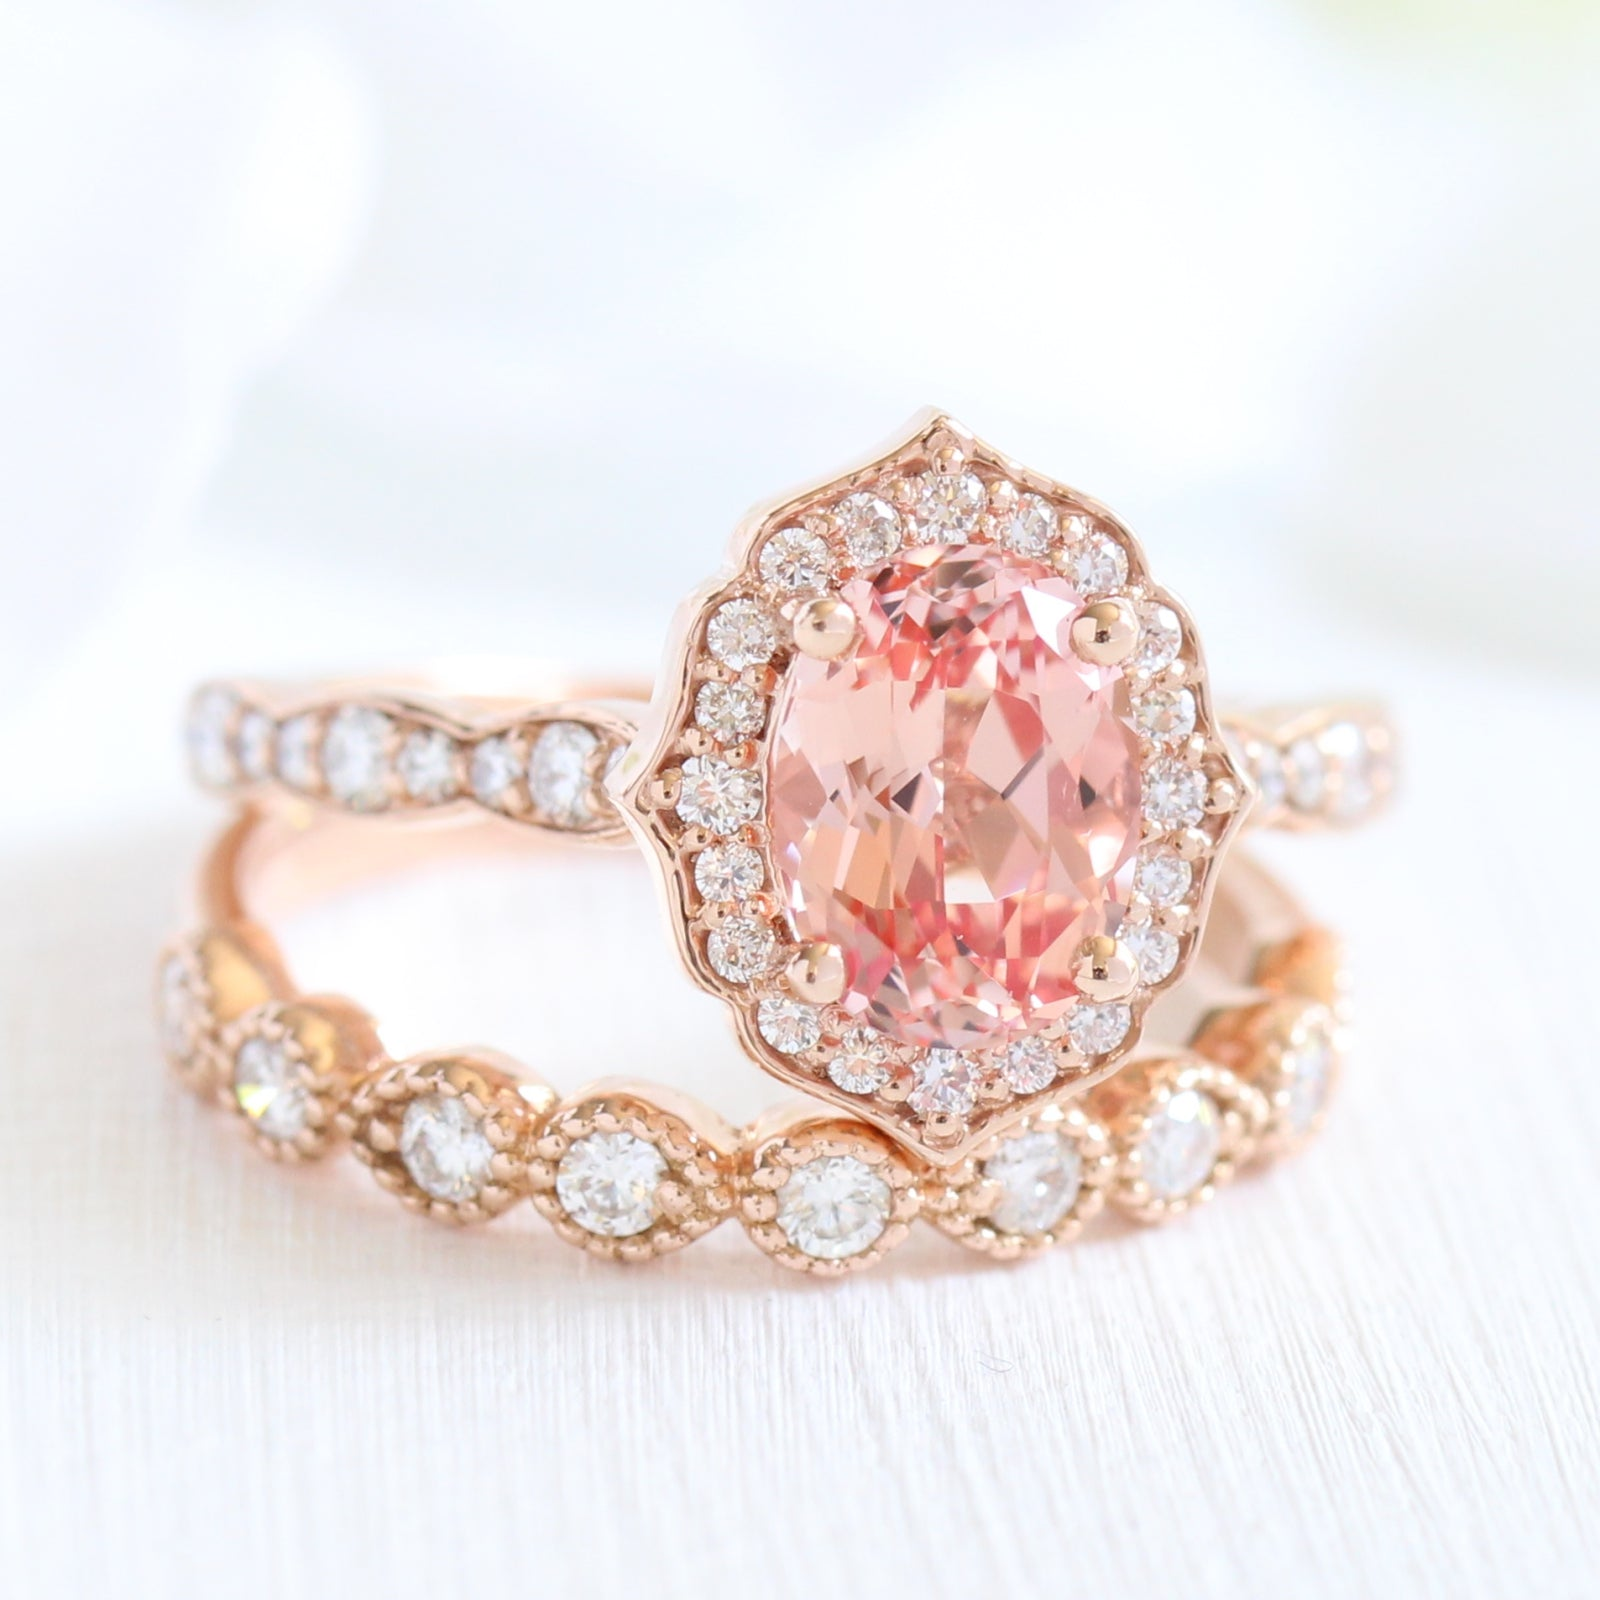 Oval Vintage Floral Bridal Set in Scalloped Band w/ Peach Sapphire ...